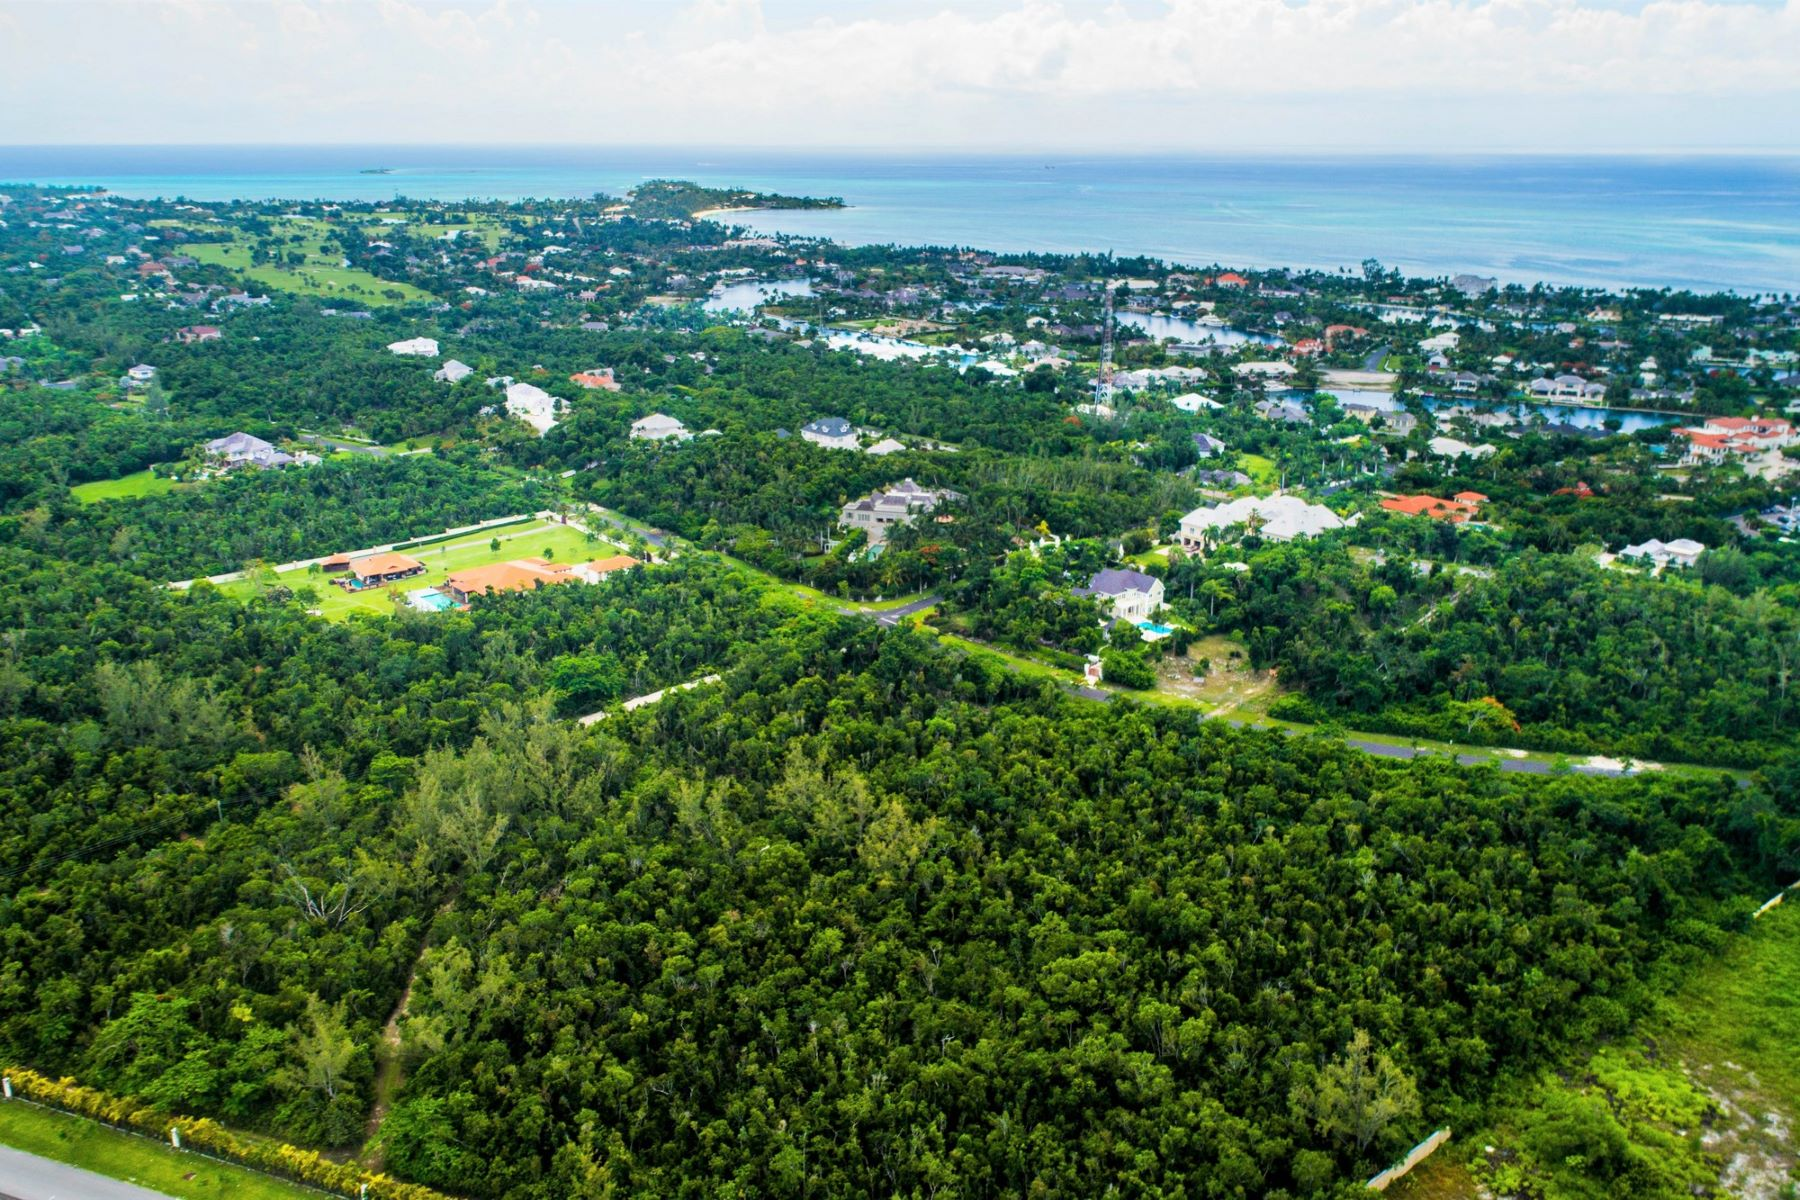 Land for Sale at Hibiscus Drive East Lot Lyford Cay, Nassau And Paradise Island Bahamas